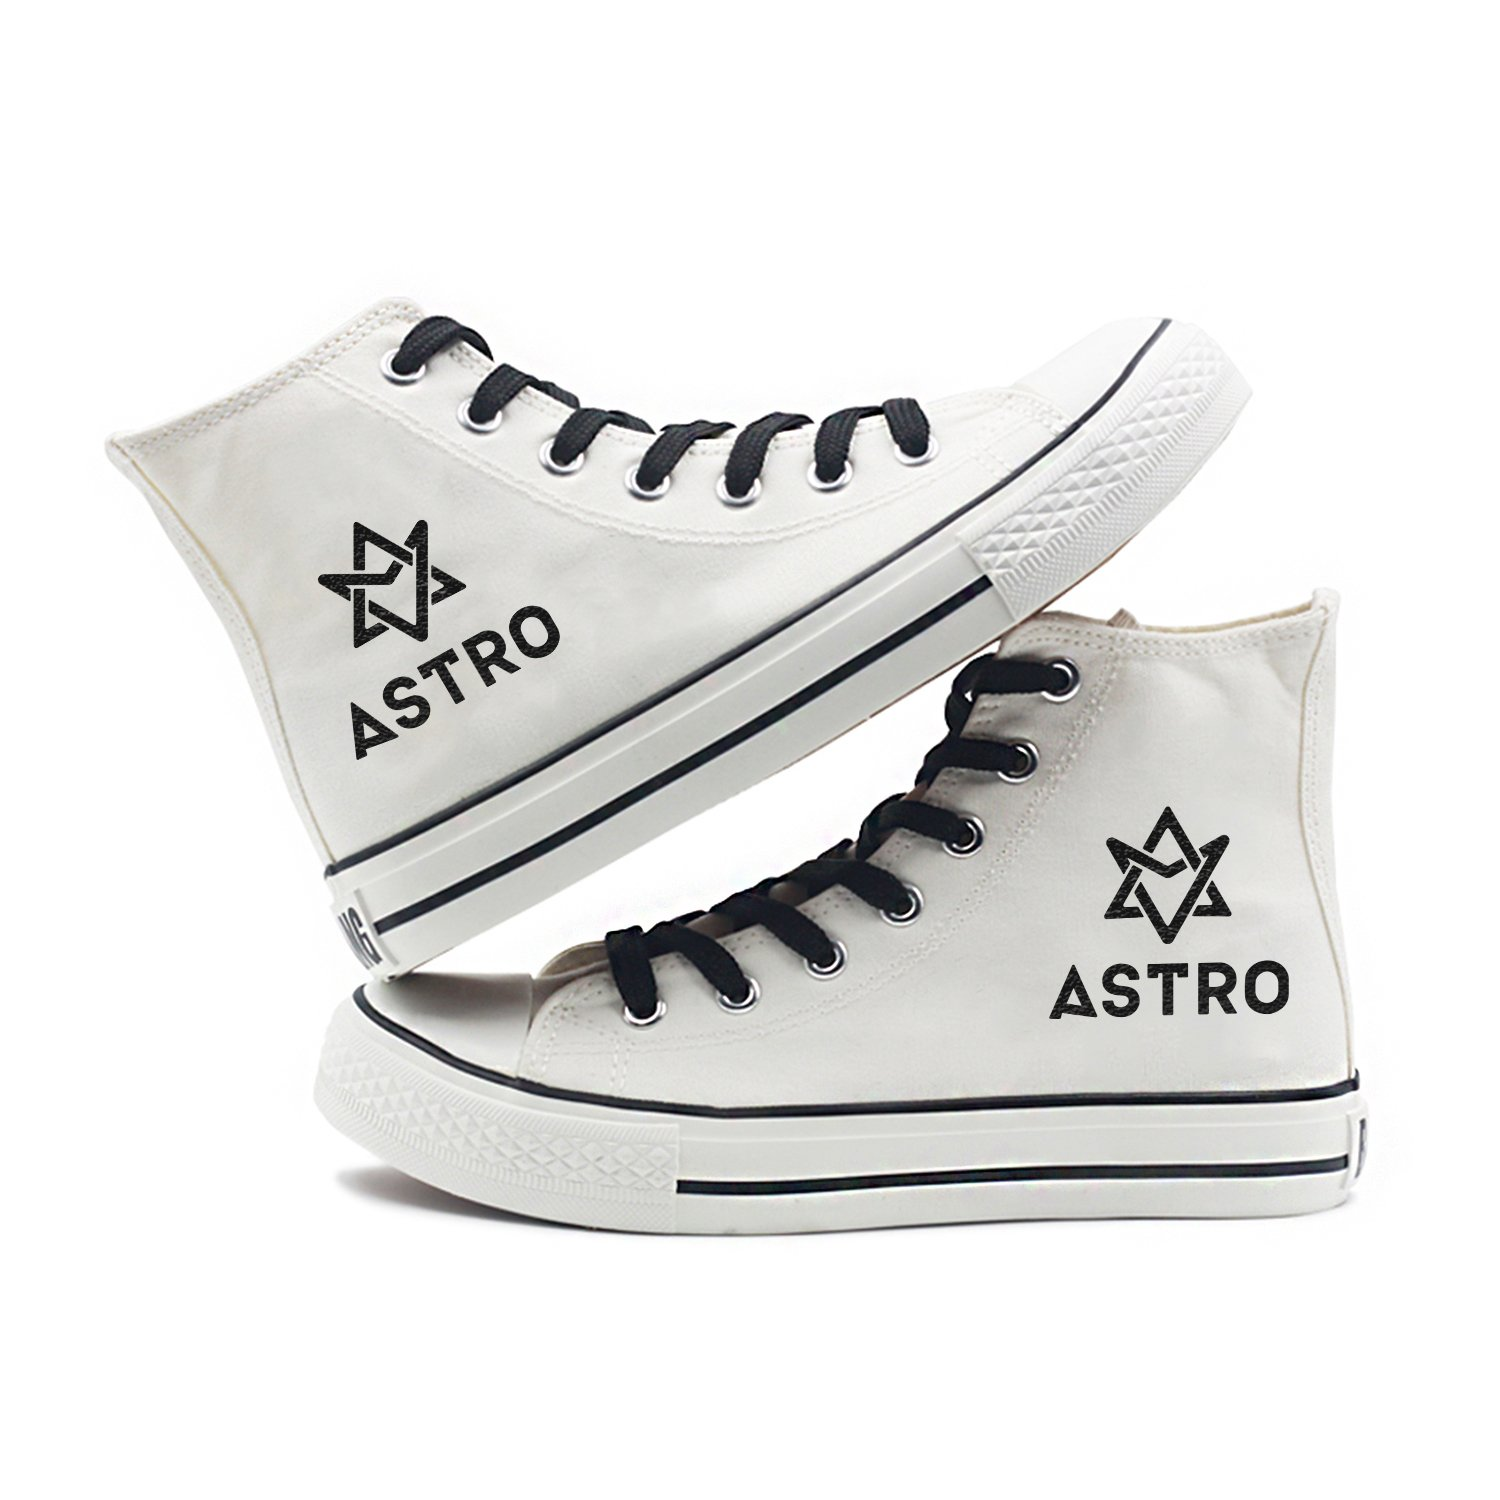 Fanstown Kpop Sneakers Canvas Shoes Womens' Size White Fanshion Memeber Hiphop Style Fan Support with lomo Card